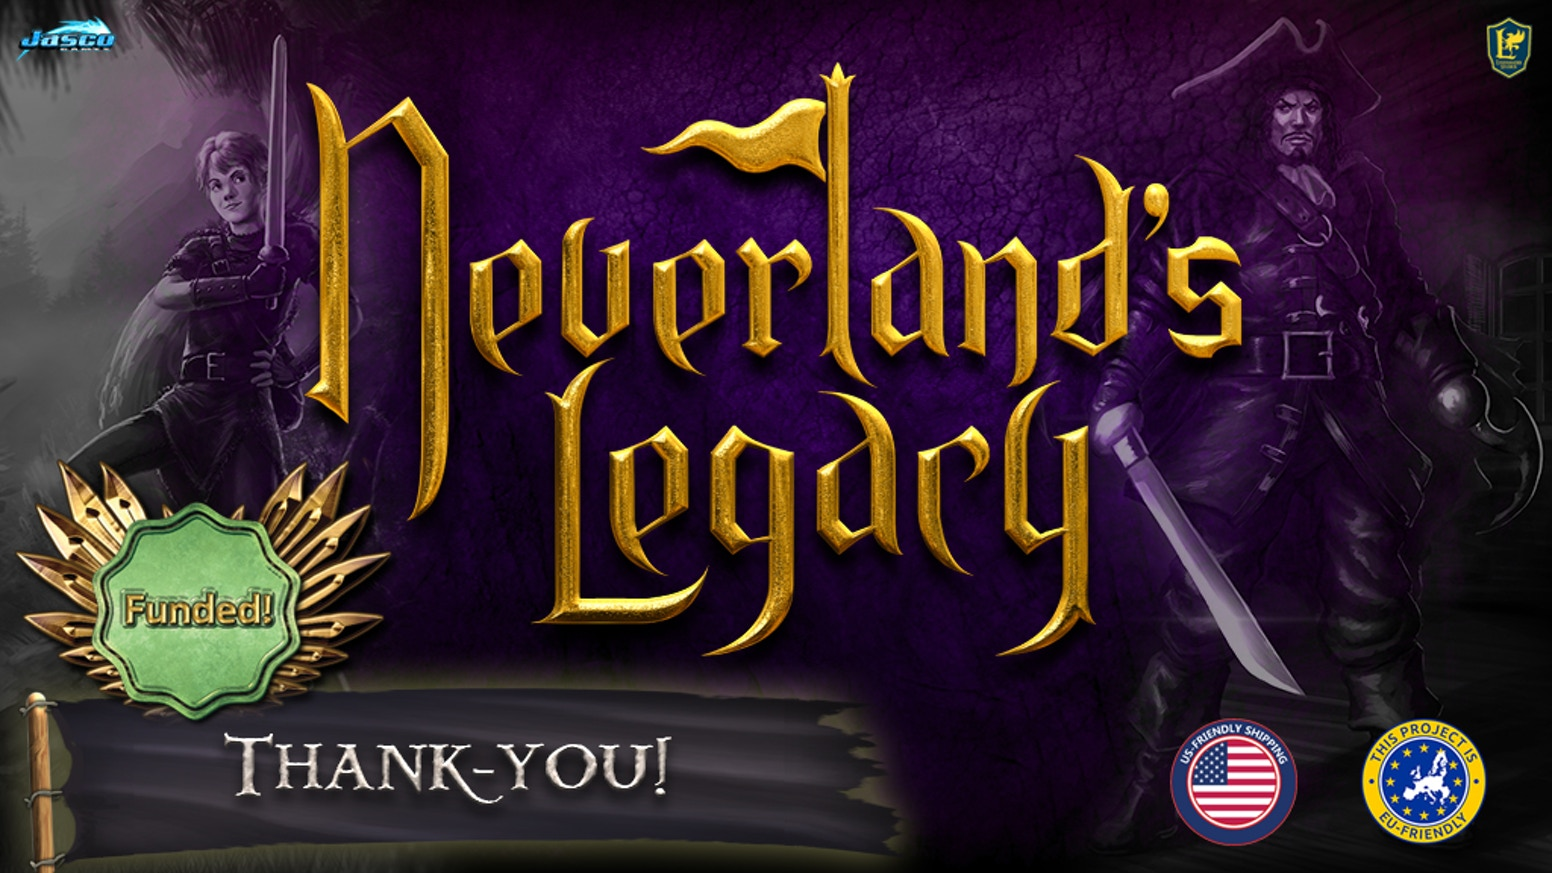 Neverland's Legacy is a 1-4 player cooperative skirmish game that pits Peter Pan and friends against Hook and his Pirates!